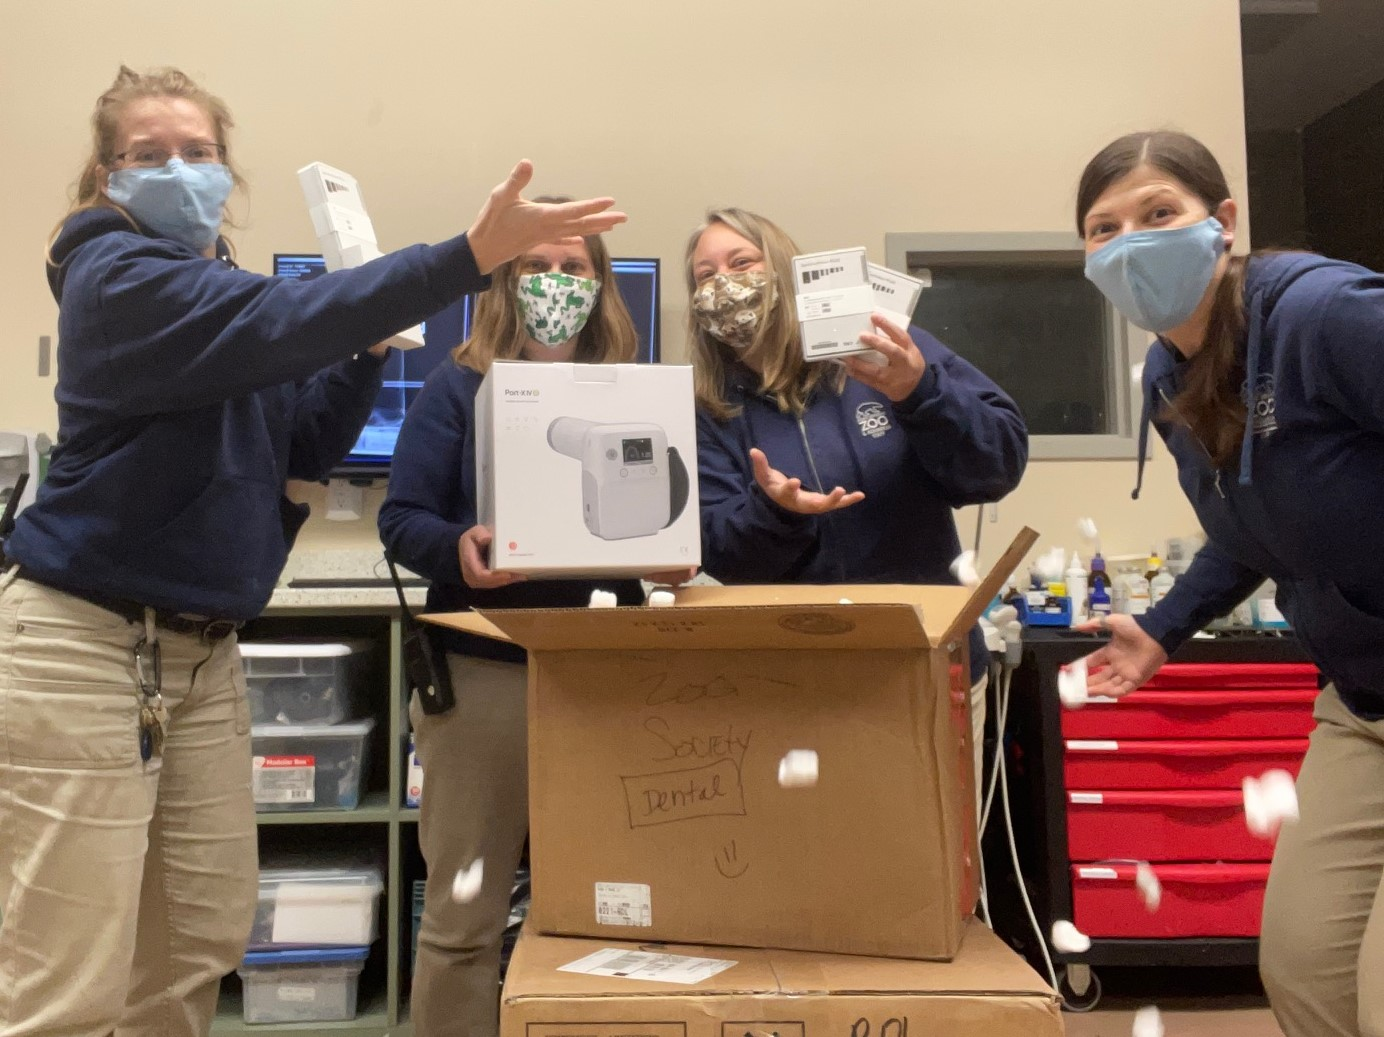 Employees at the Point Defiance Zoo hold up parts of the new dental x-ray machine they acquired.